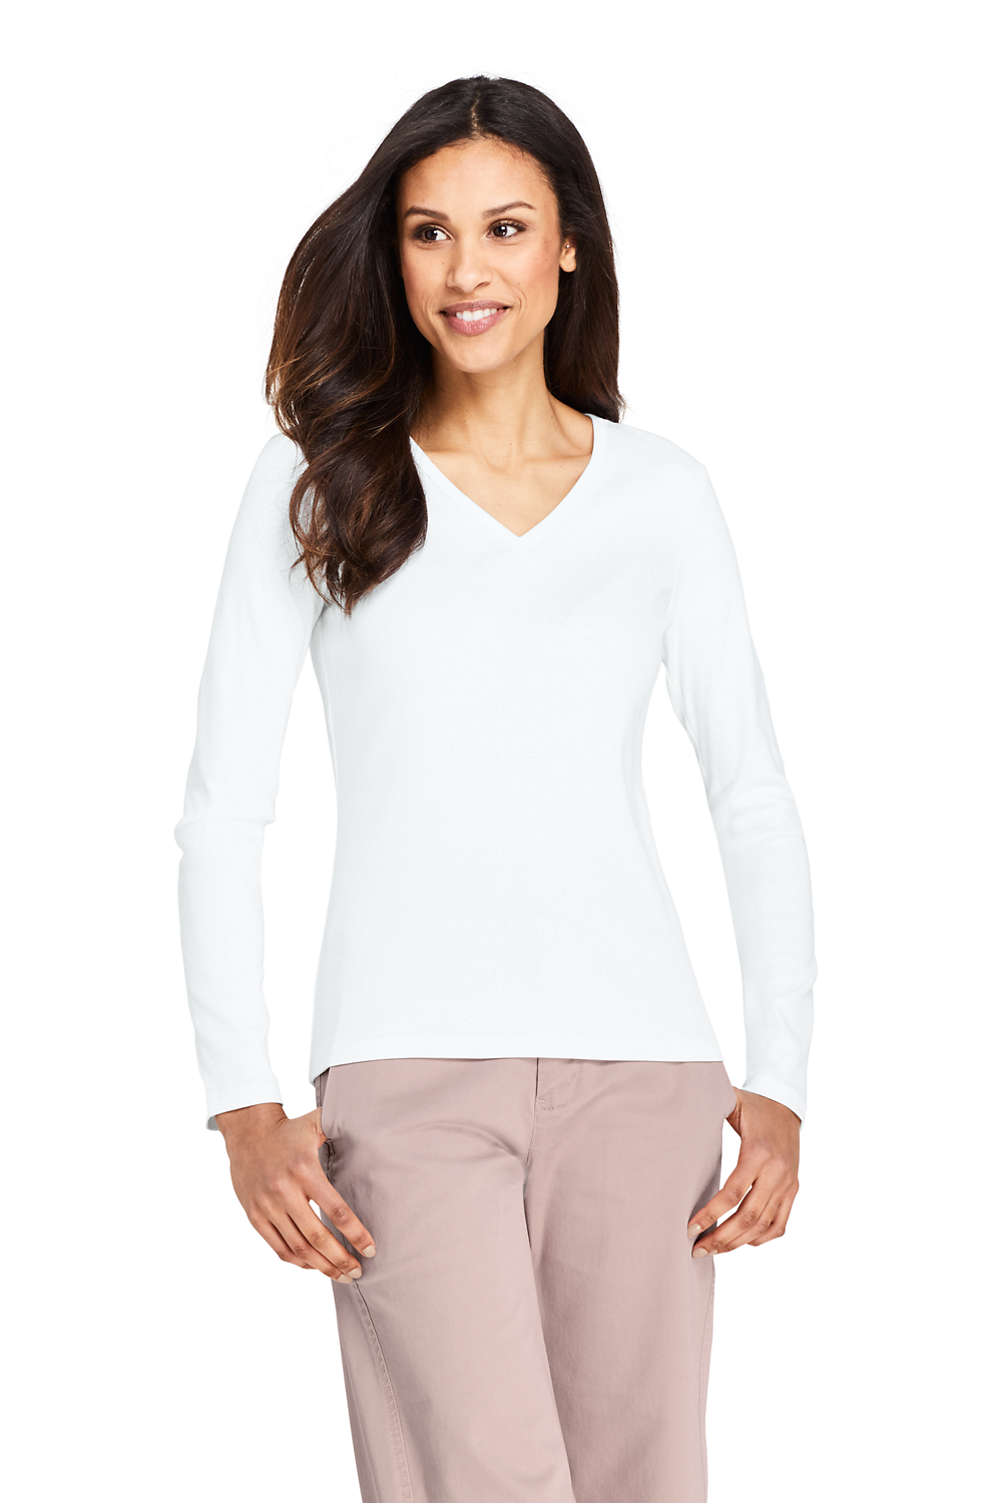 Women s All Cotton Long Sleeve T-Shirt Rib Knit V-Neck from Lands  End 80ca8074b